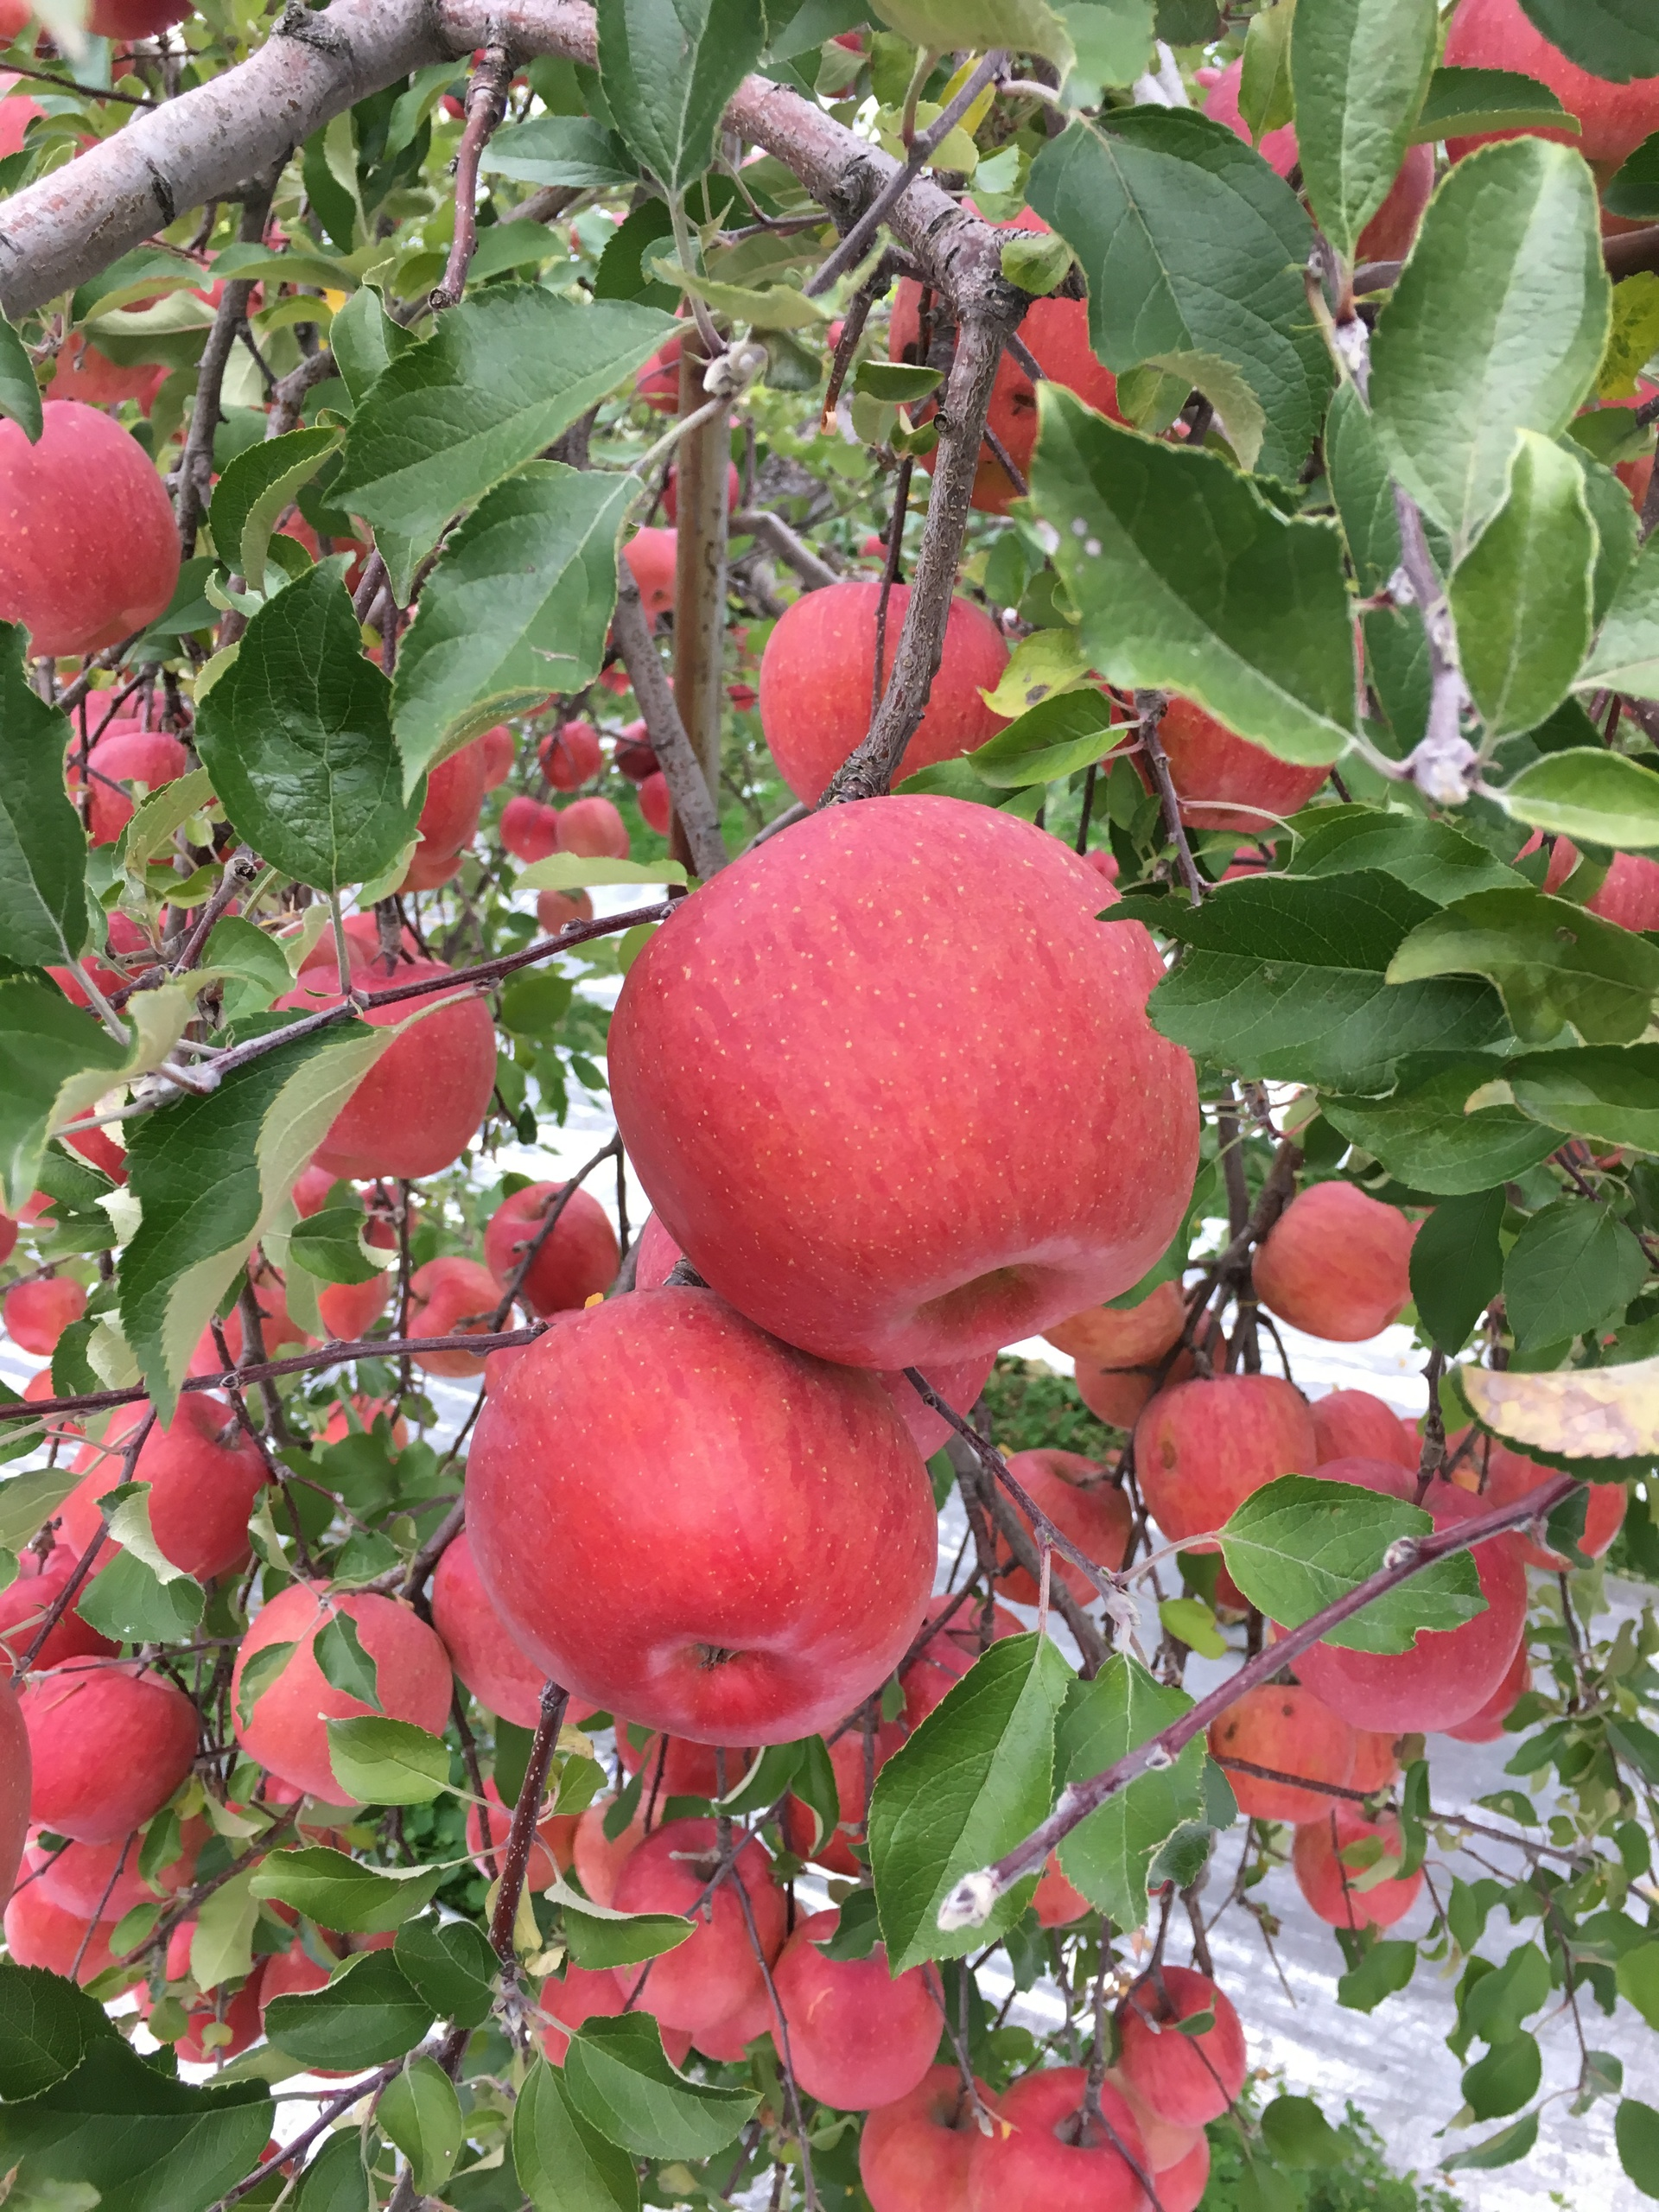 Japanese apples of 1kg each in Yamagata, Japan